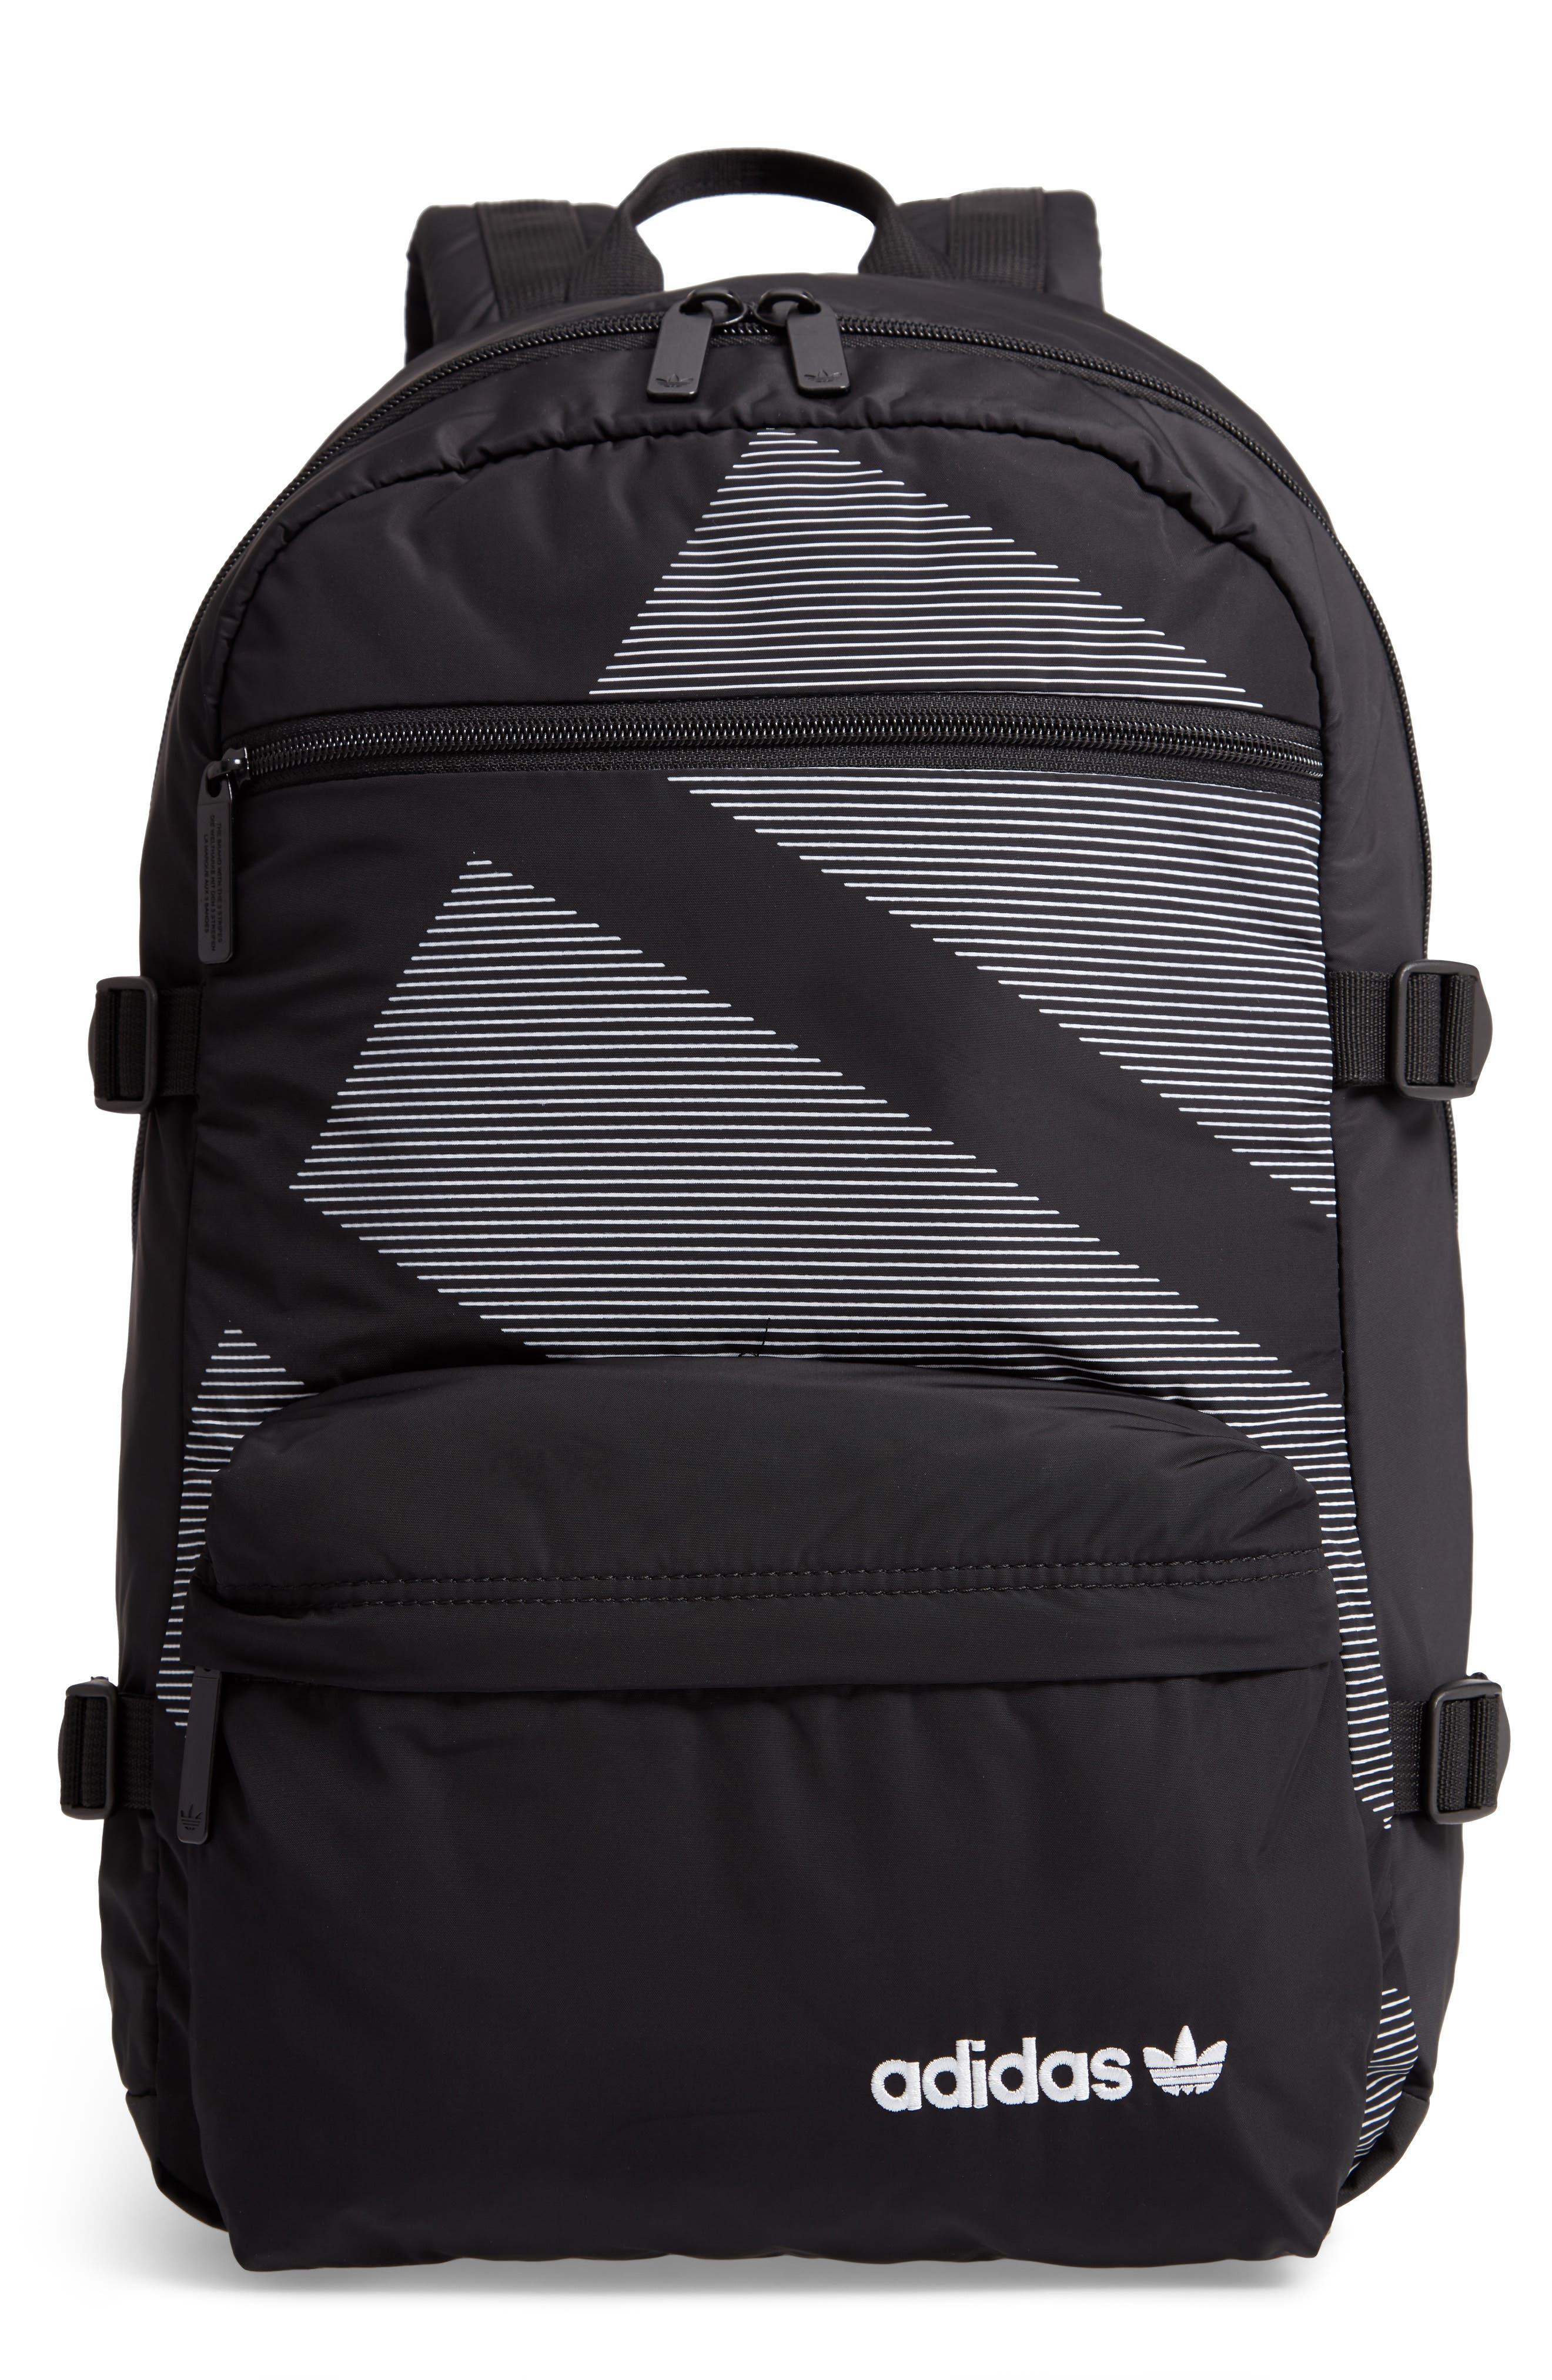 Adidas Originals Eqt Backpack -